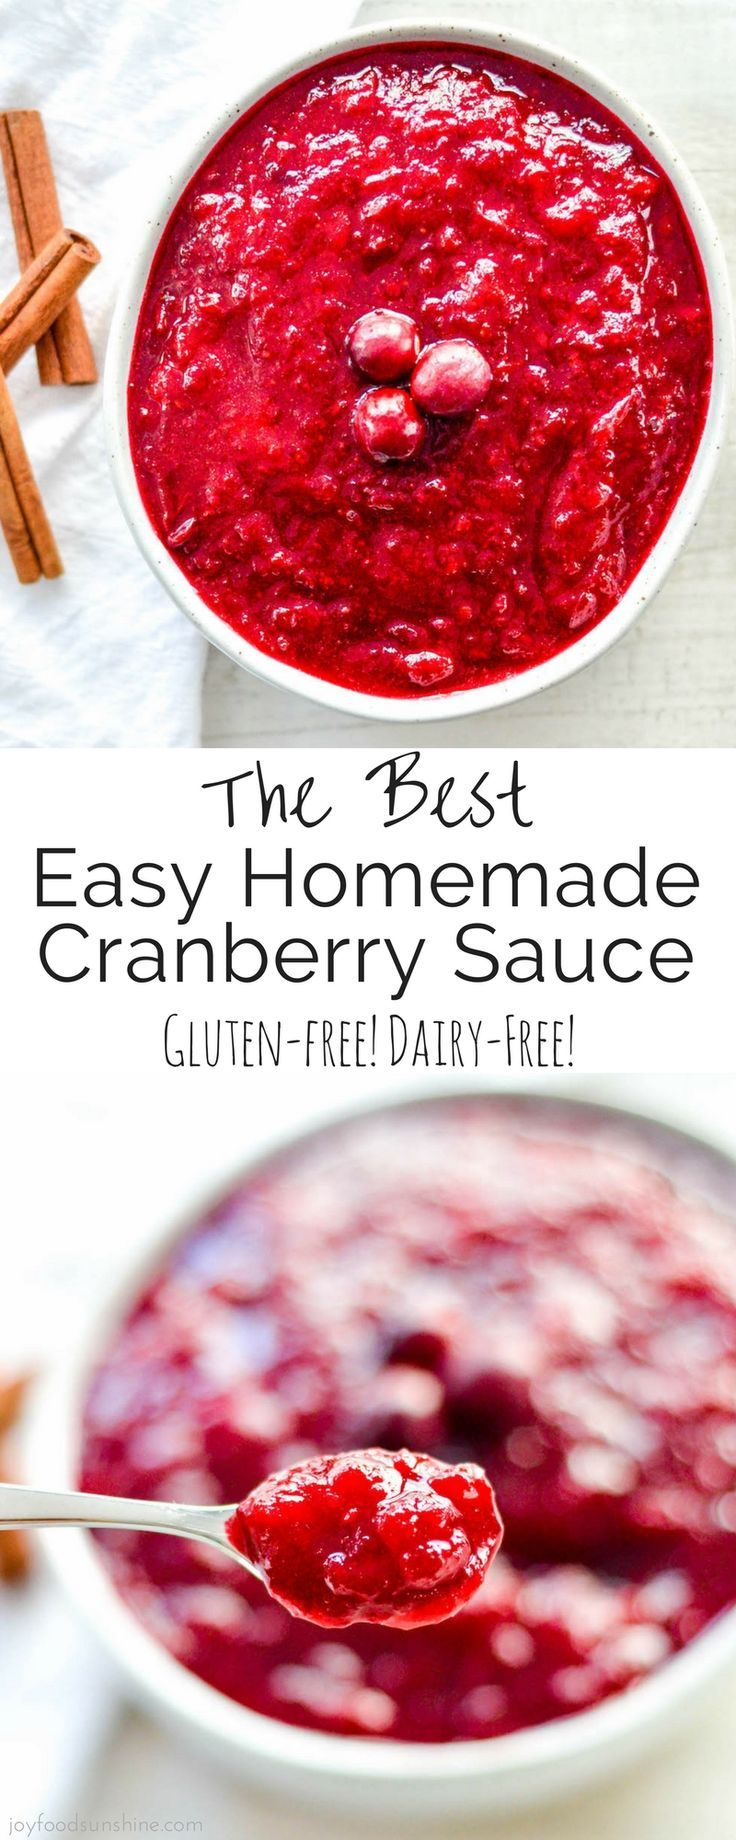 The best Homemade Cranberry Sauce recipe you will ever make, and a must-have recipe for your holiday celebrations! Never buy cranberries in a can again! Gluten-free & vegan!